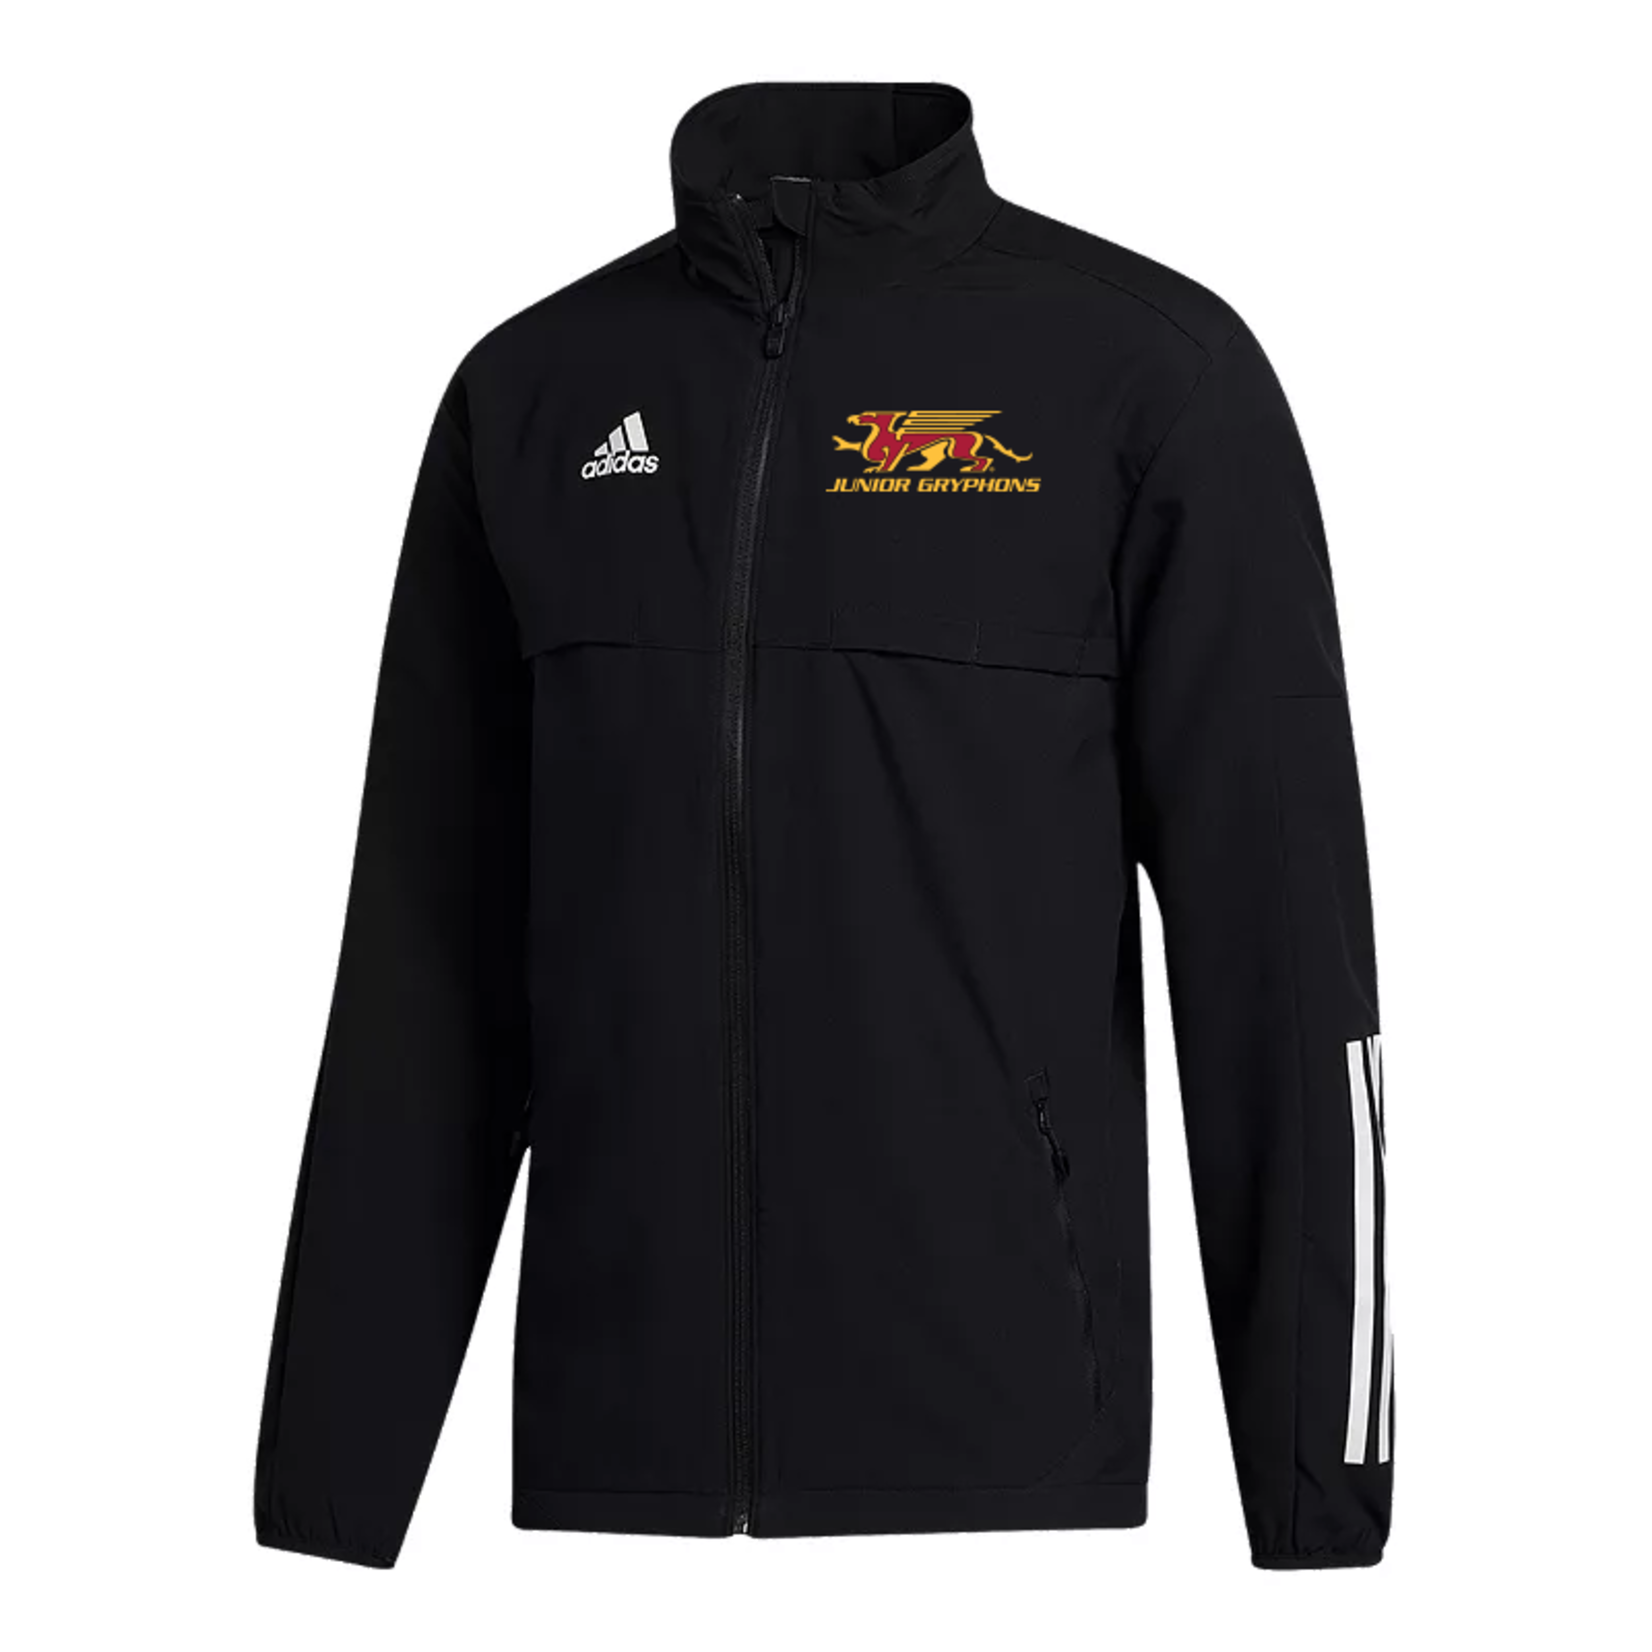 ADIDAS Guelph Gryphons Adidas Rink Suit Jacket - Youth